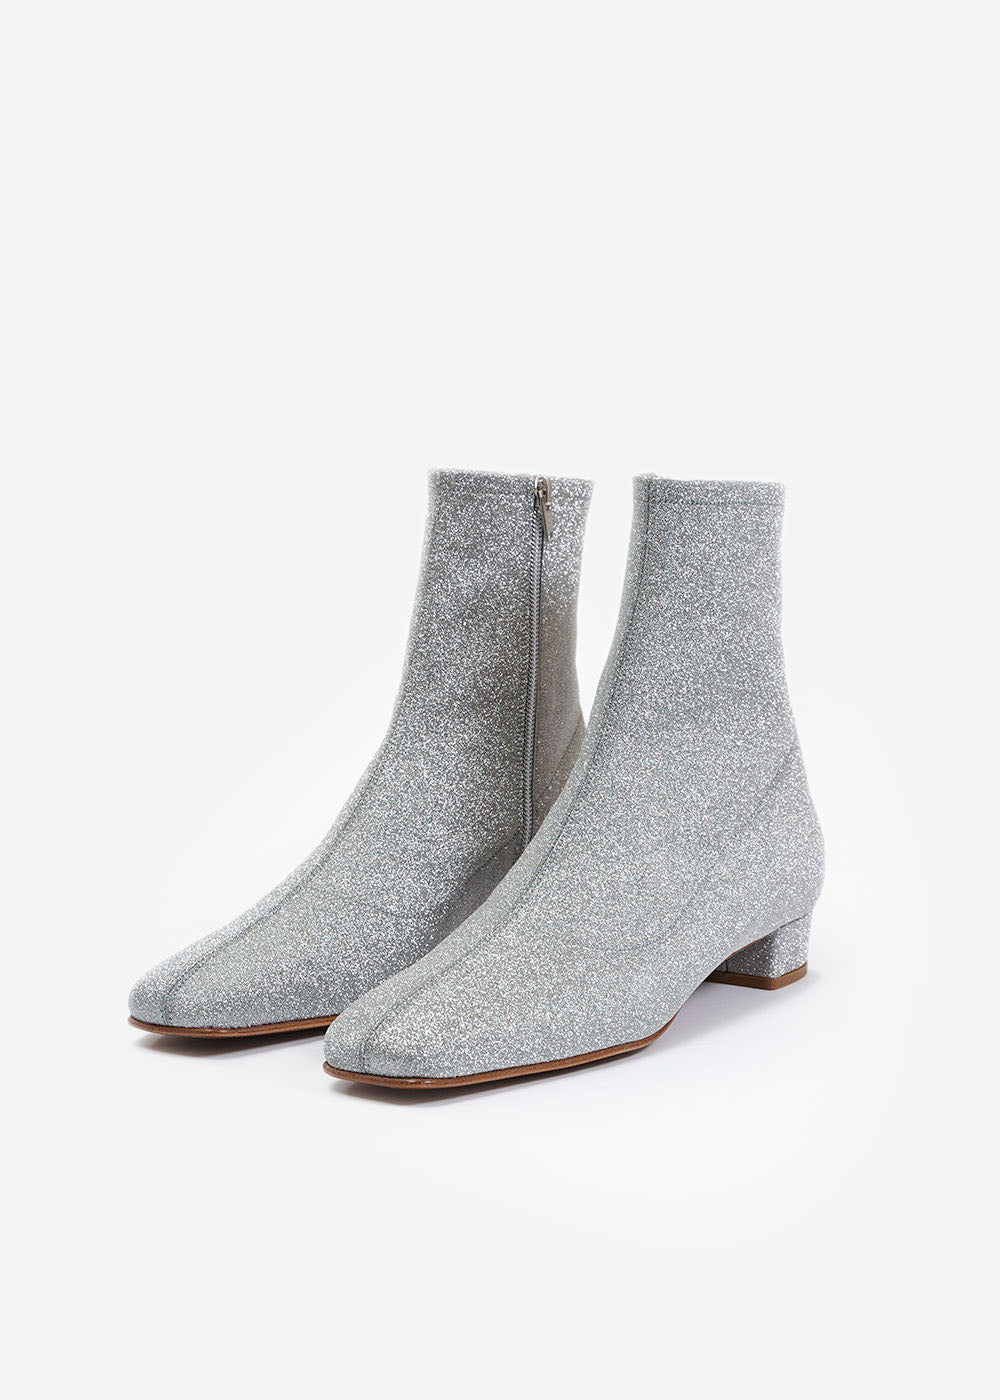 BY FAR Silver Glitter Este Boot — Shop sustainable fashion and slow fashion at New Classics Studios